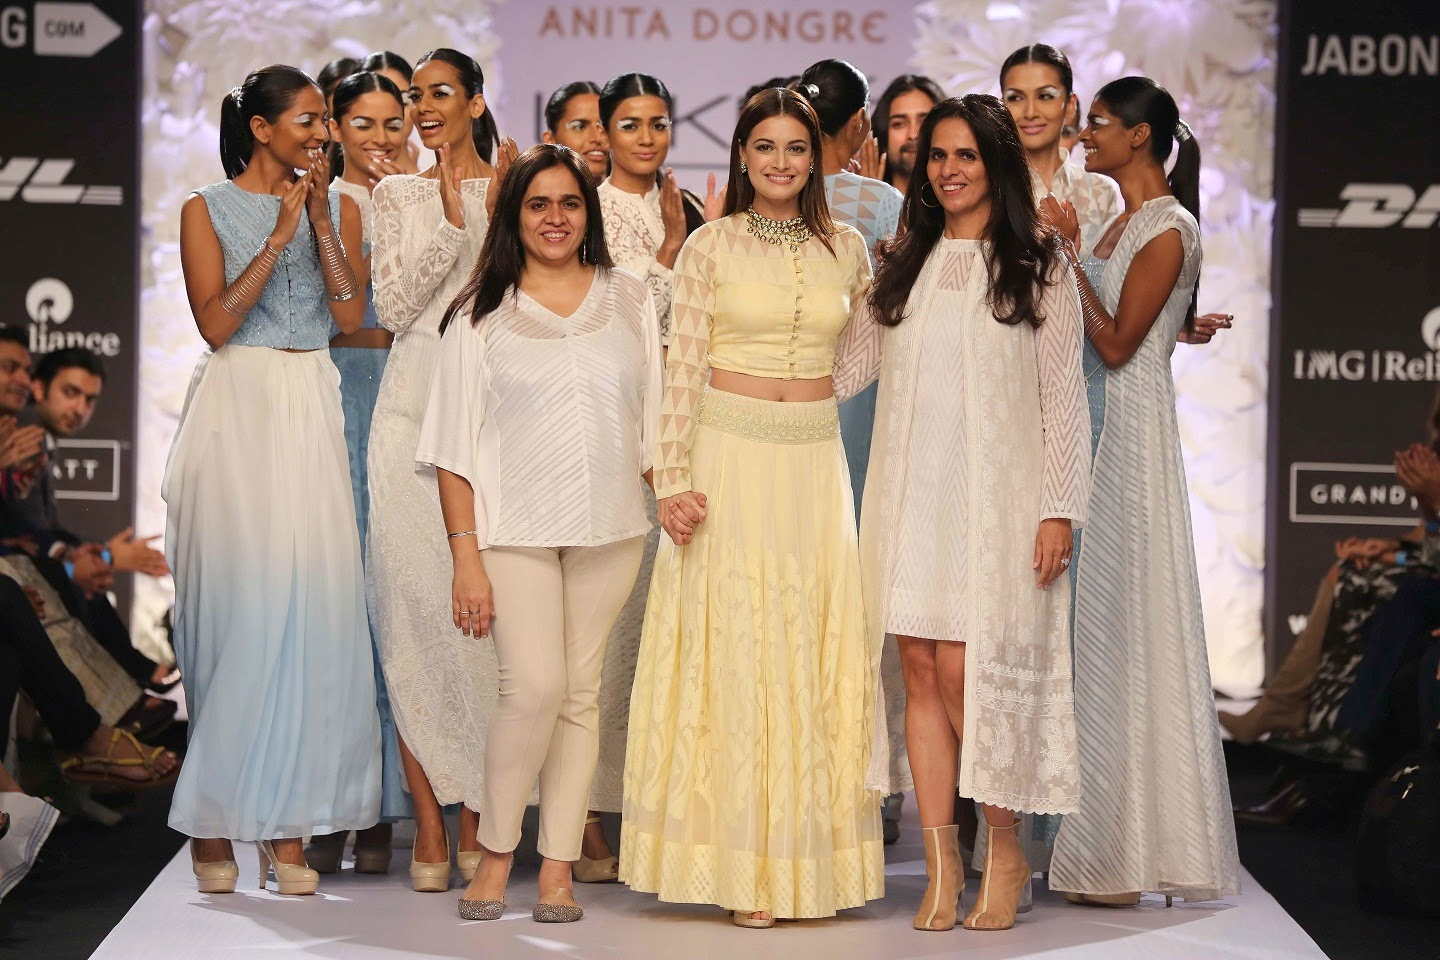 The gorgeous Dia Mirza glided down the catwalk in an ethereal self designed lemon lehenga and long sleeved blouse followed by models wearing waisted full-sleeved dress and maxi. Soon there were pretty pastel sections that offered a mélange of creations.